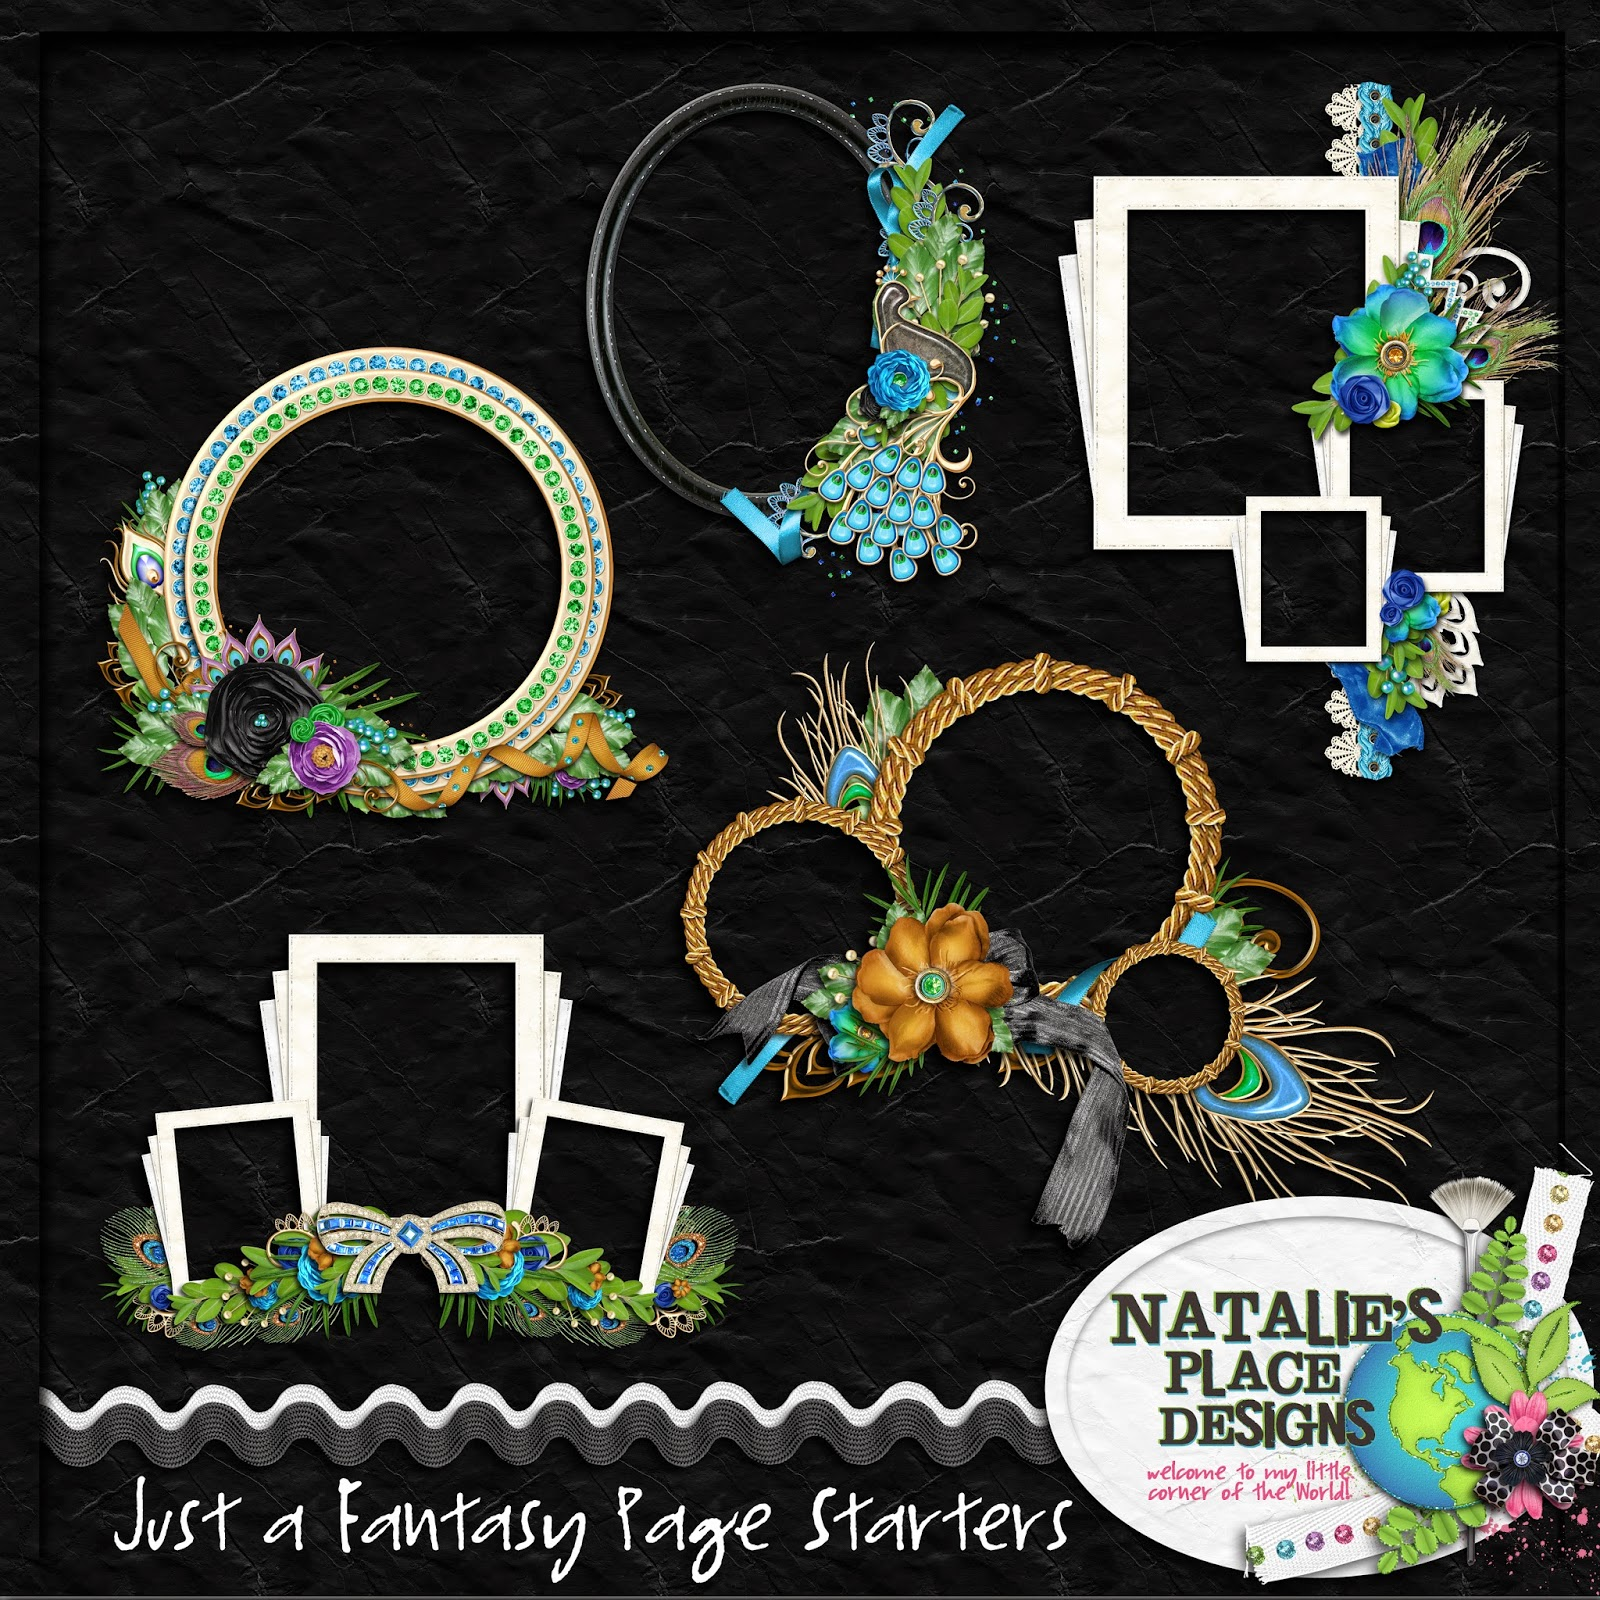 http://www.nataliesplacedesigns.com/store/p467/Just_a_Fanatsy_Paper_Stacks.html